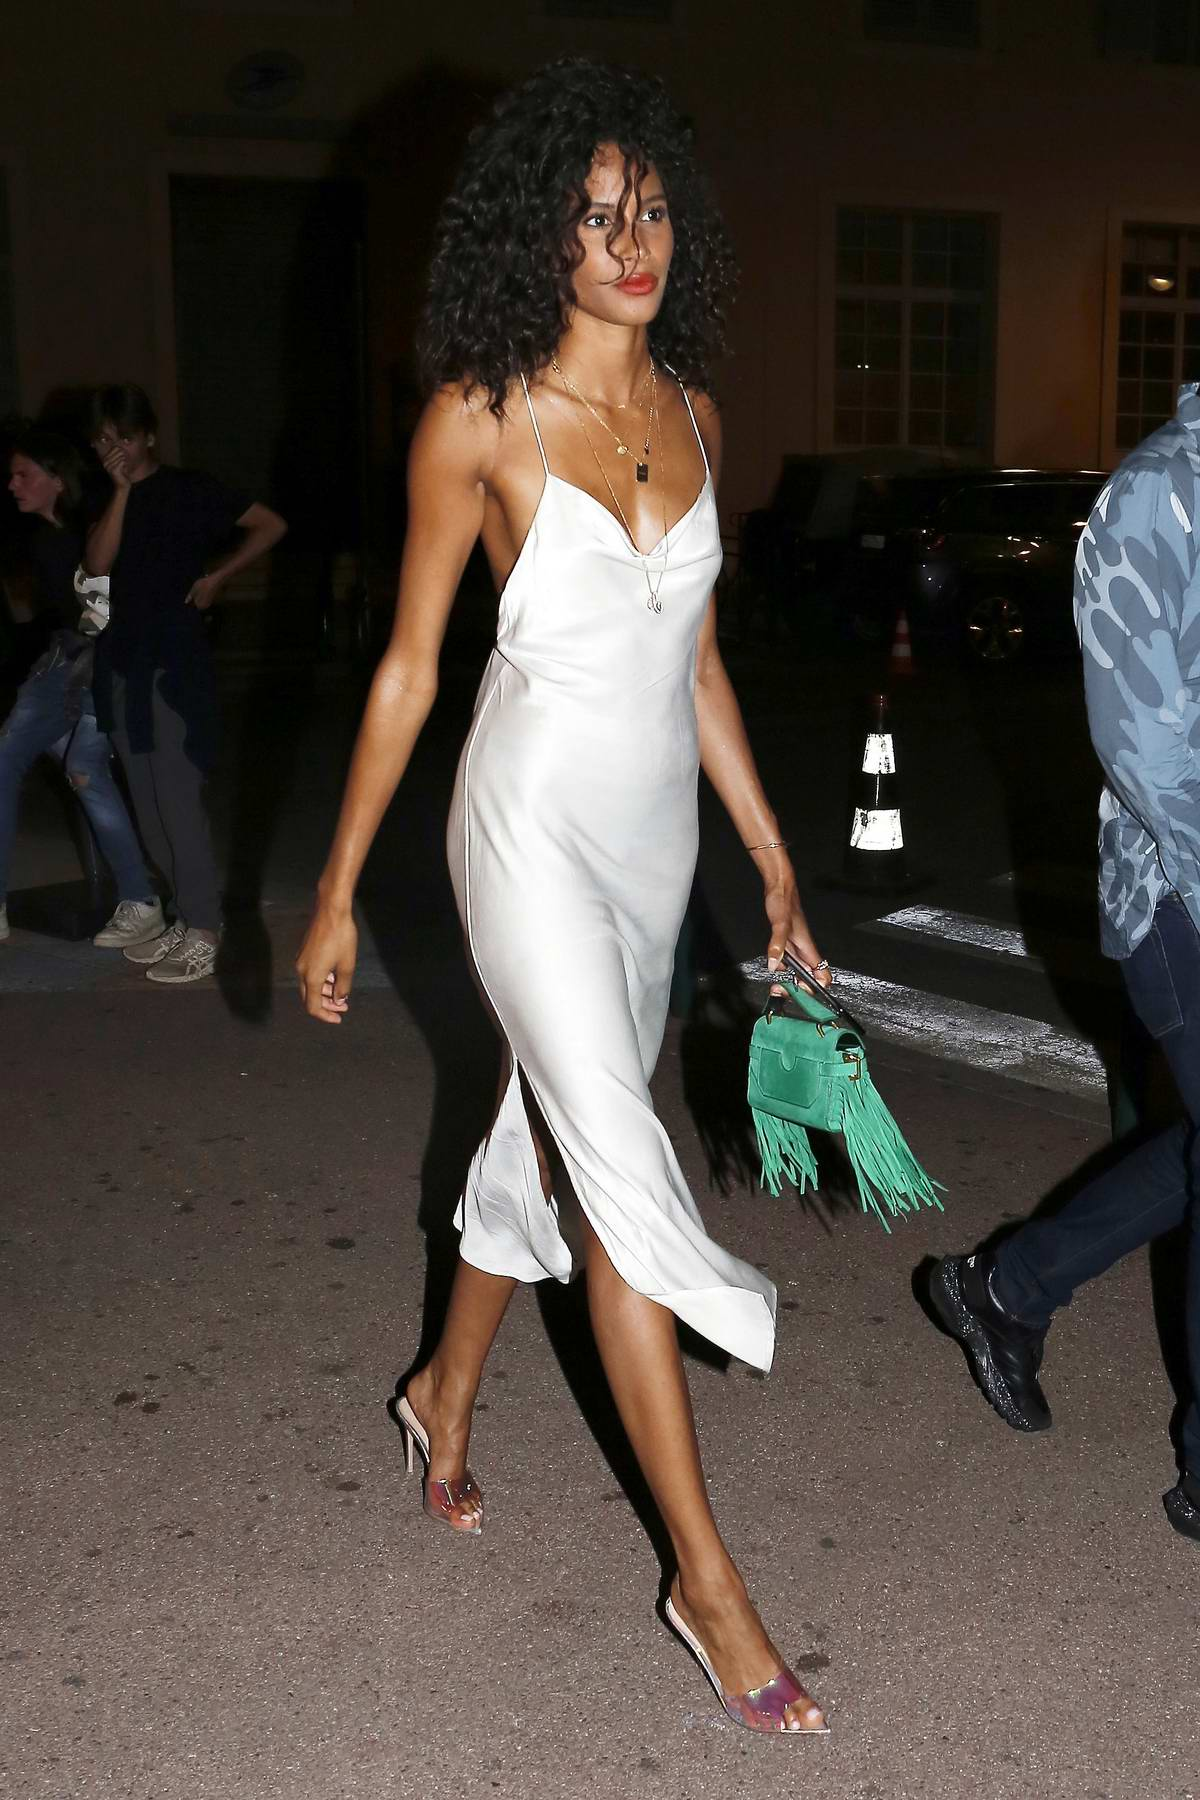 Cindy Bruna looks amazing in a white satin dress as she arrives at VIP Room La Gioia in Saint-Tropez, France